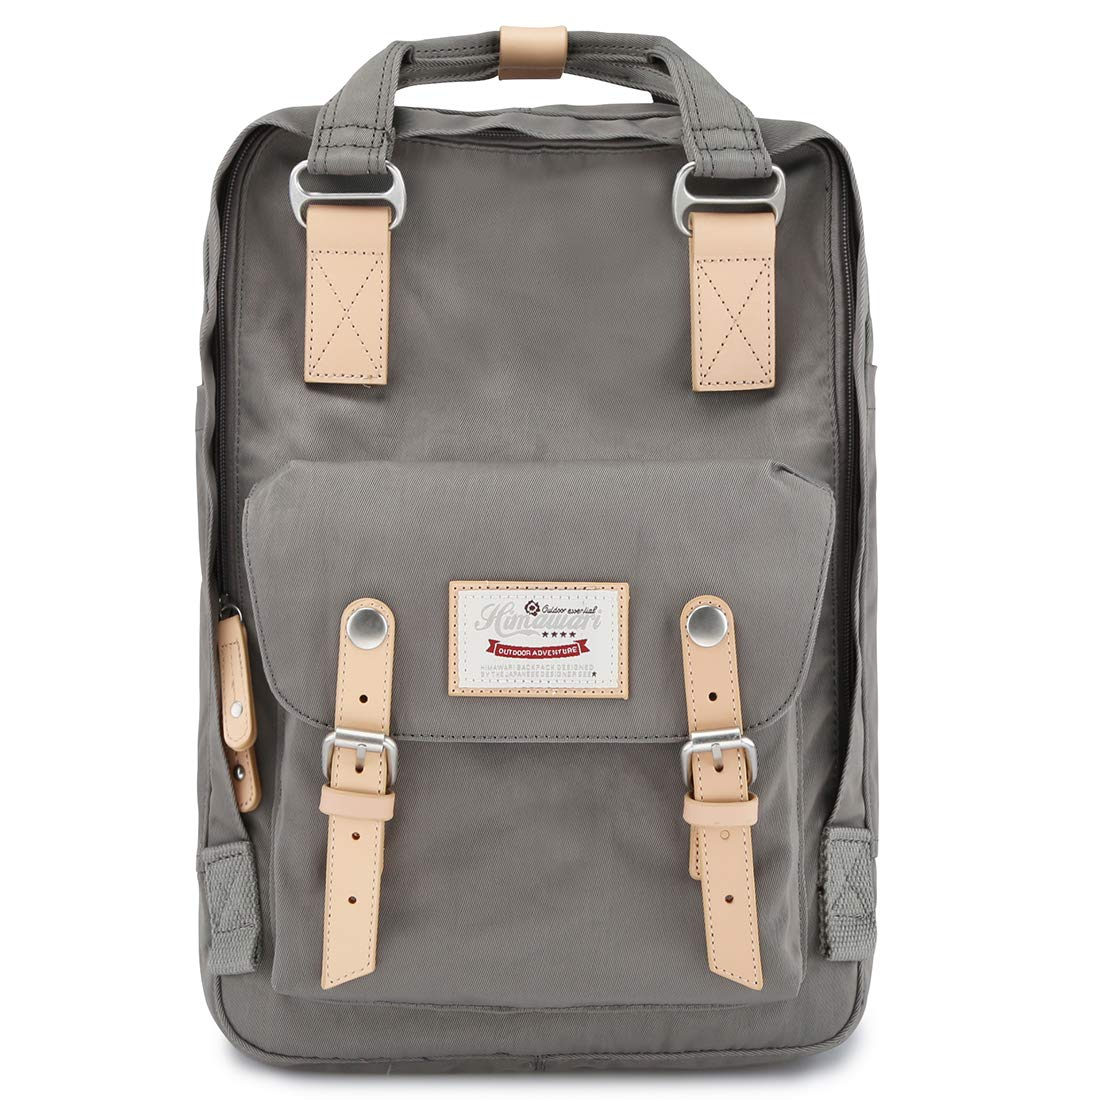 Himawari School Laptop Backpack for College Large 17 inch Computer Notebook Bag Travel Business Backpack for Men Women, Grey by himawari